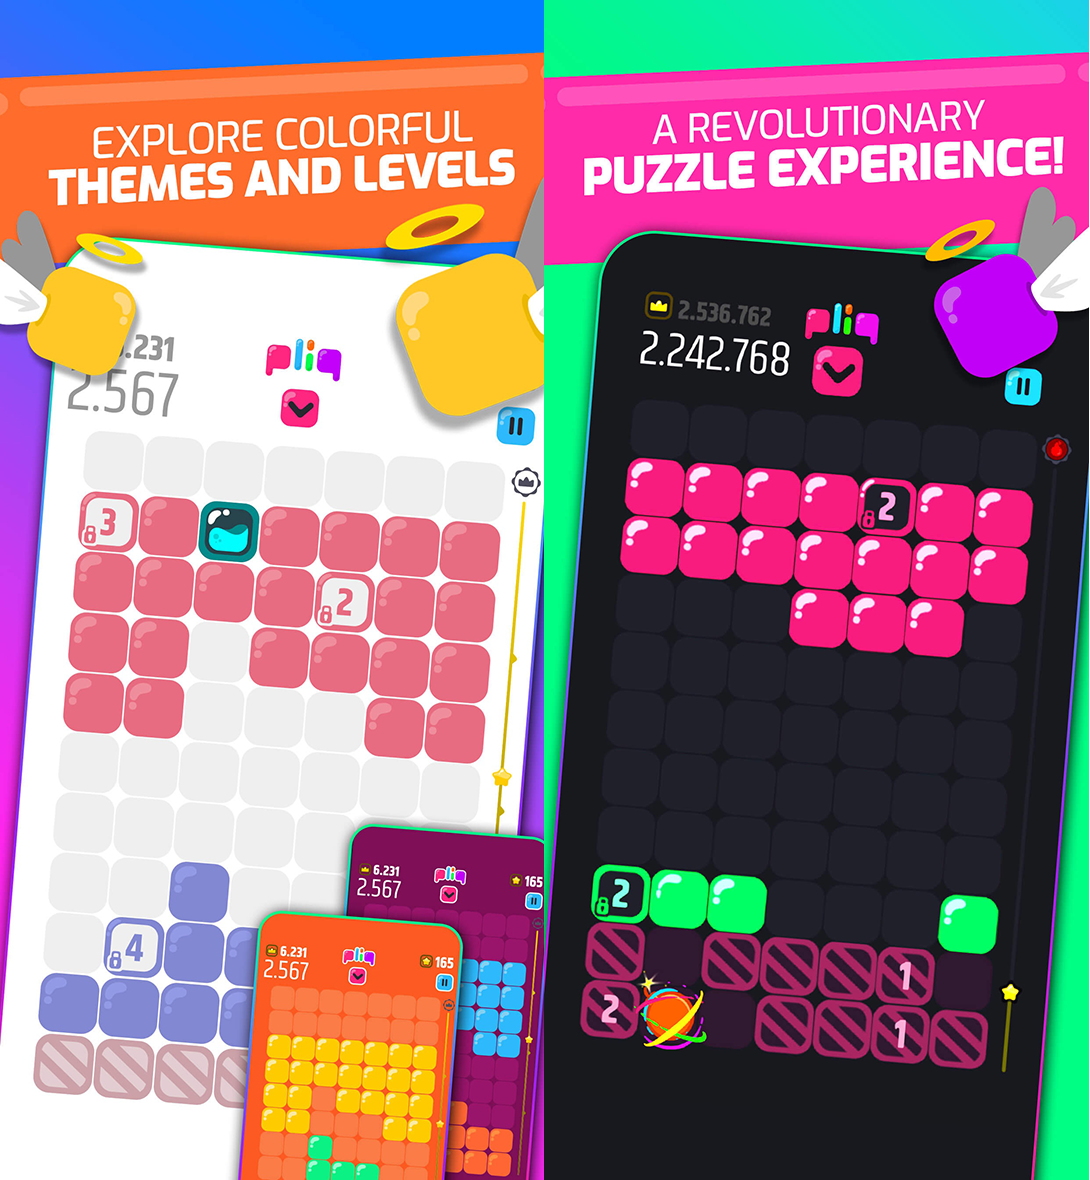 pliq: A Marvelous Puzzle Game